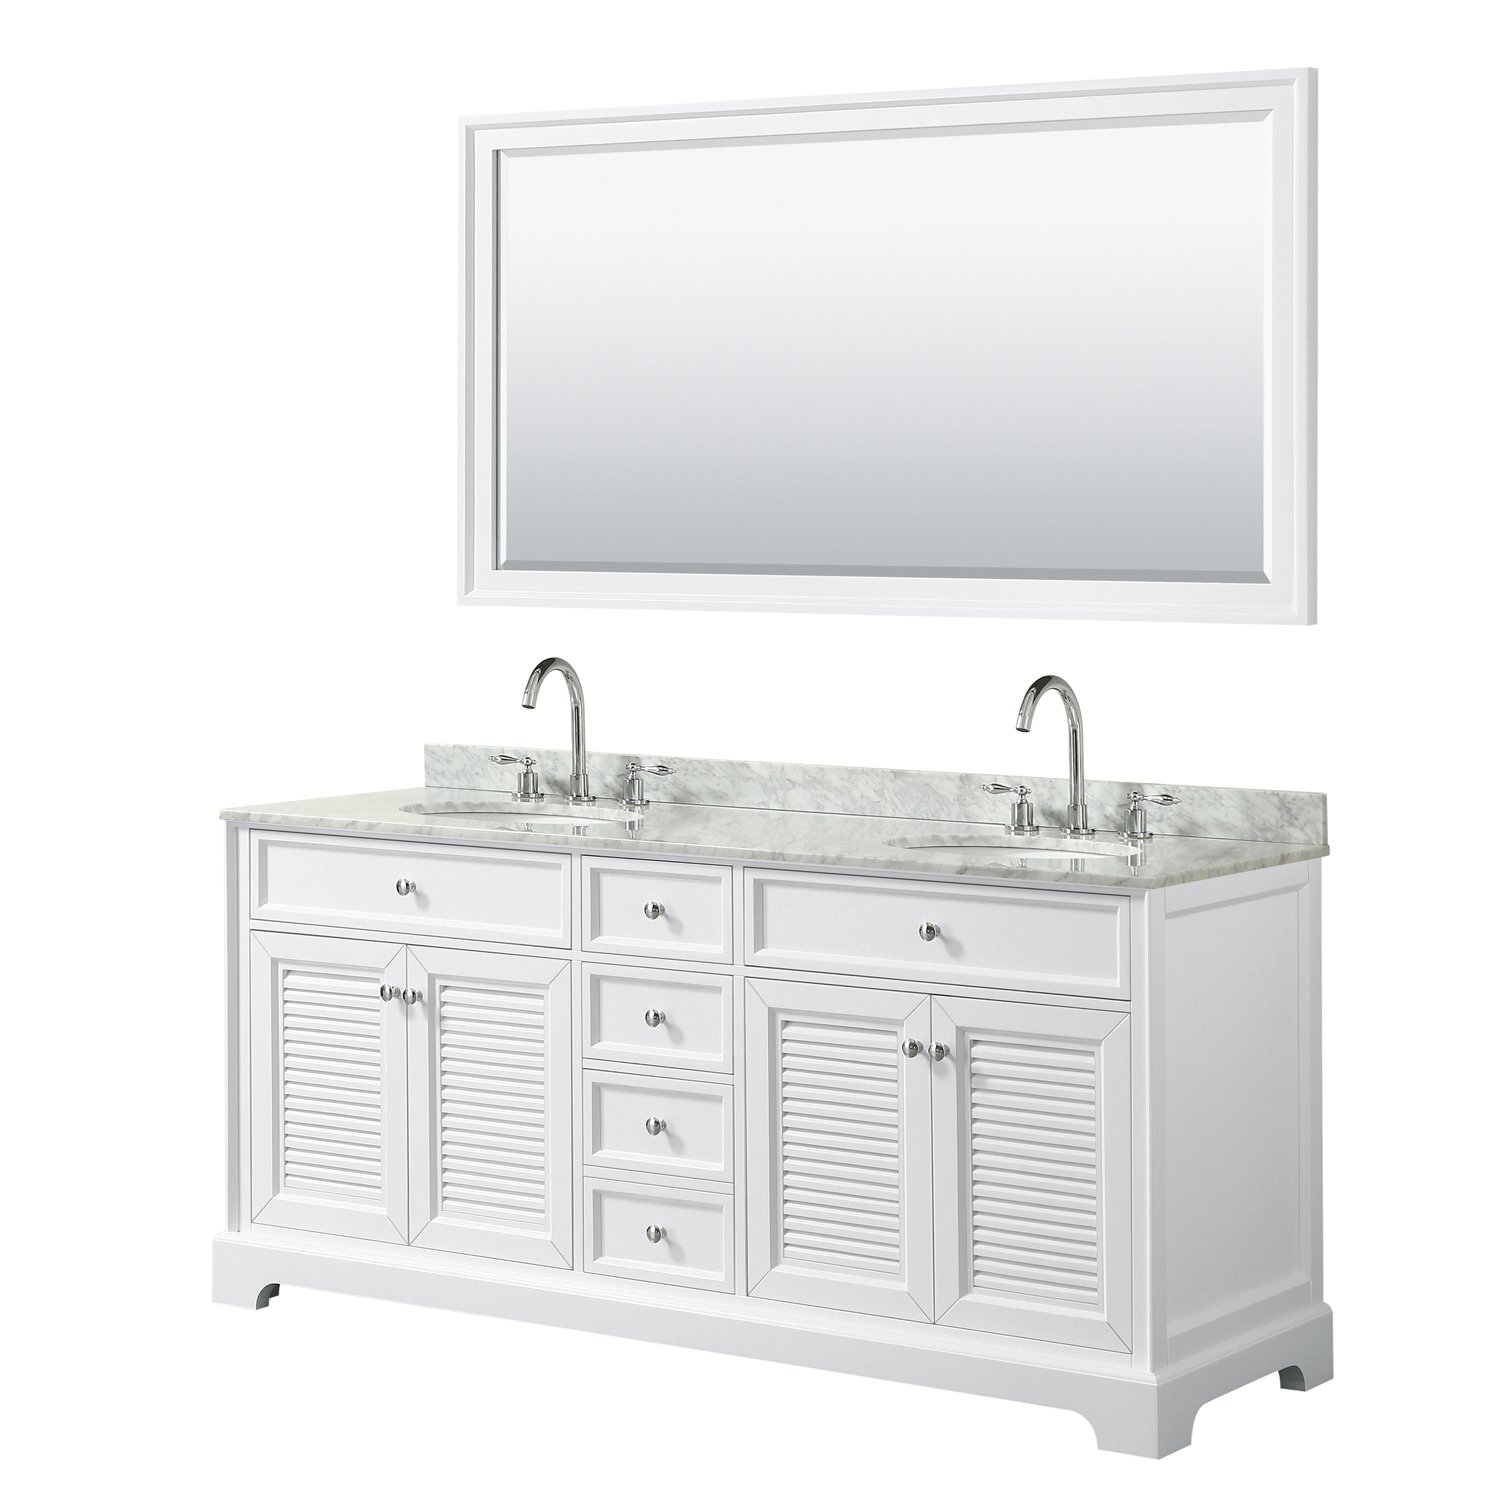 Wyndham Collection Tamara 72 Inch Double Bathroom Vanity In White